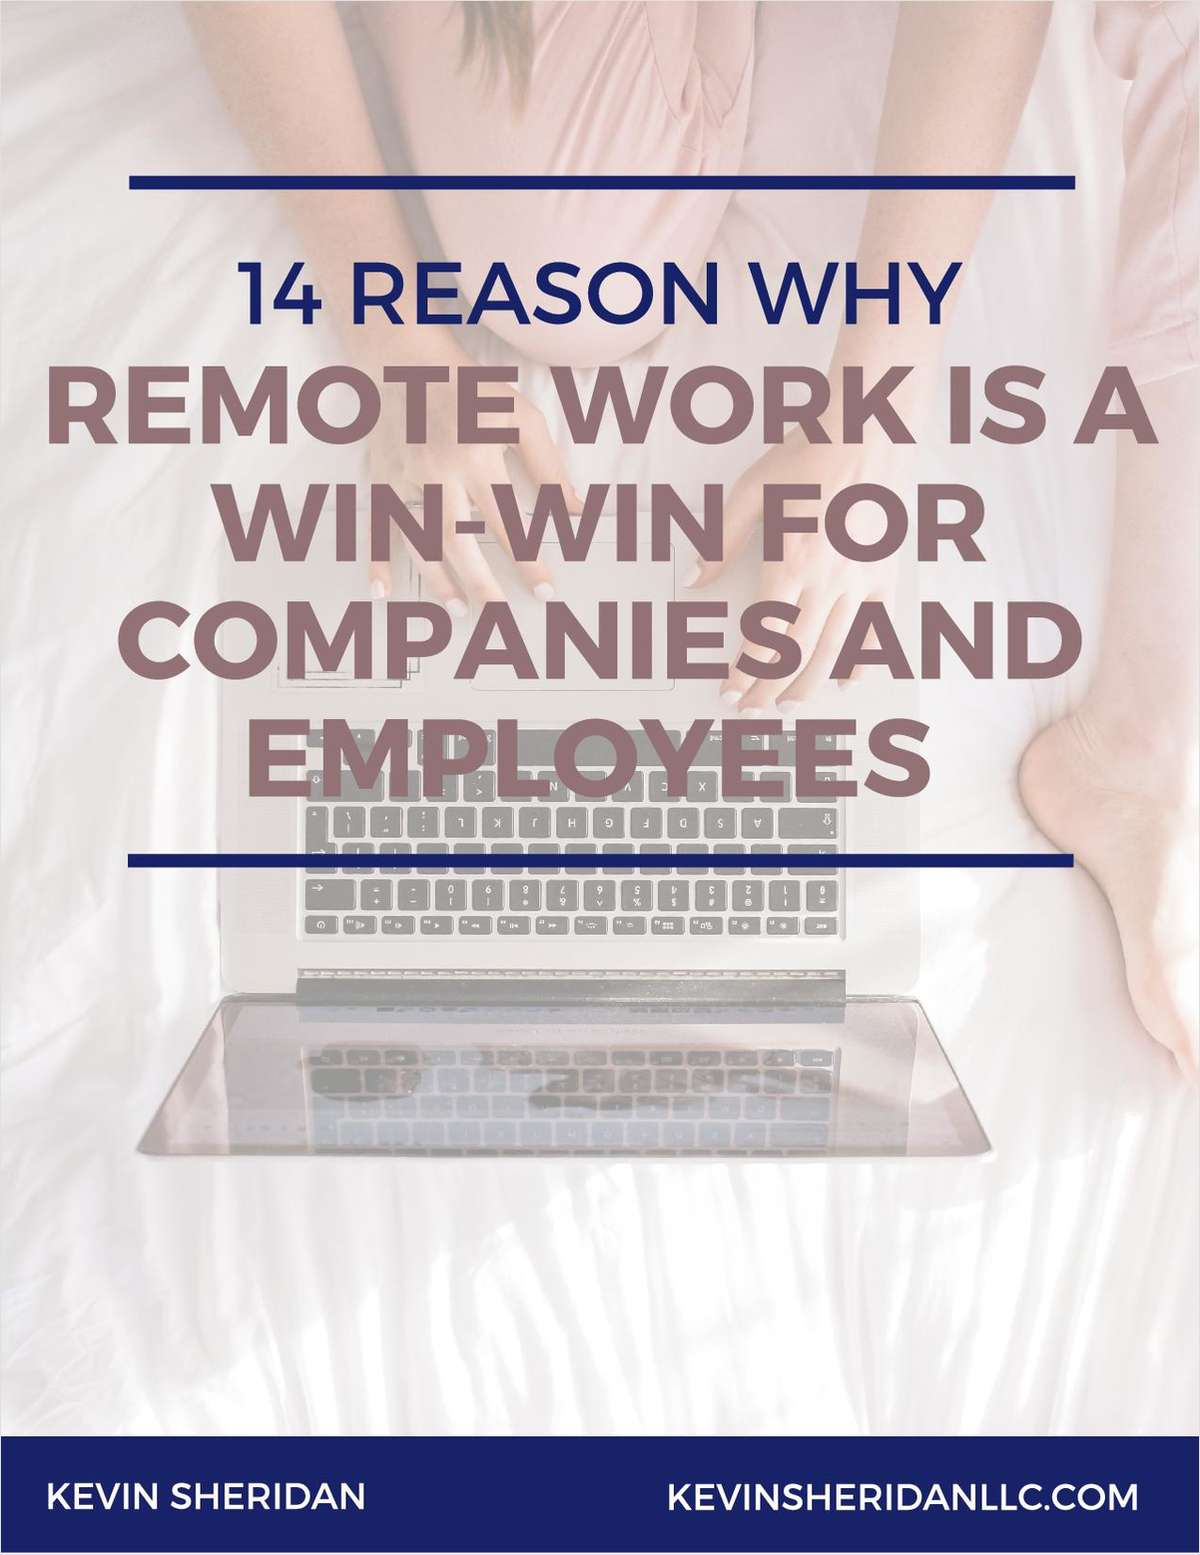 14 Reasons Why Remote Work is a Win-Win for Companies and Employees